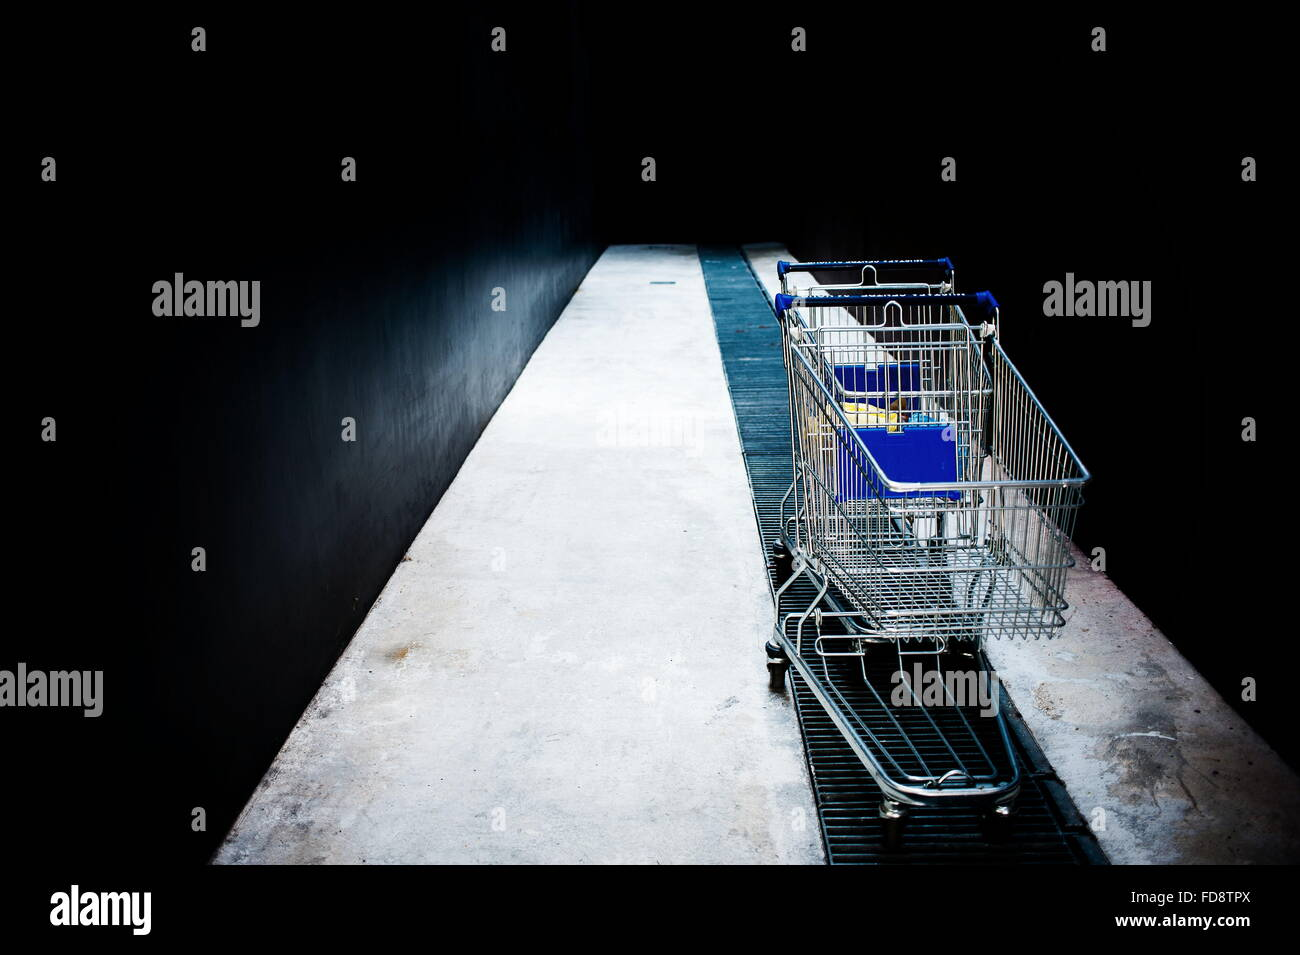 Abandoned Shopping Carts On Metal Grate In Alley - Stock Image